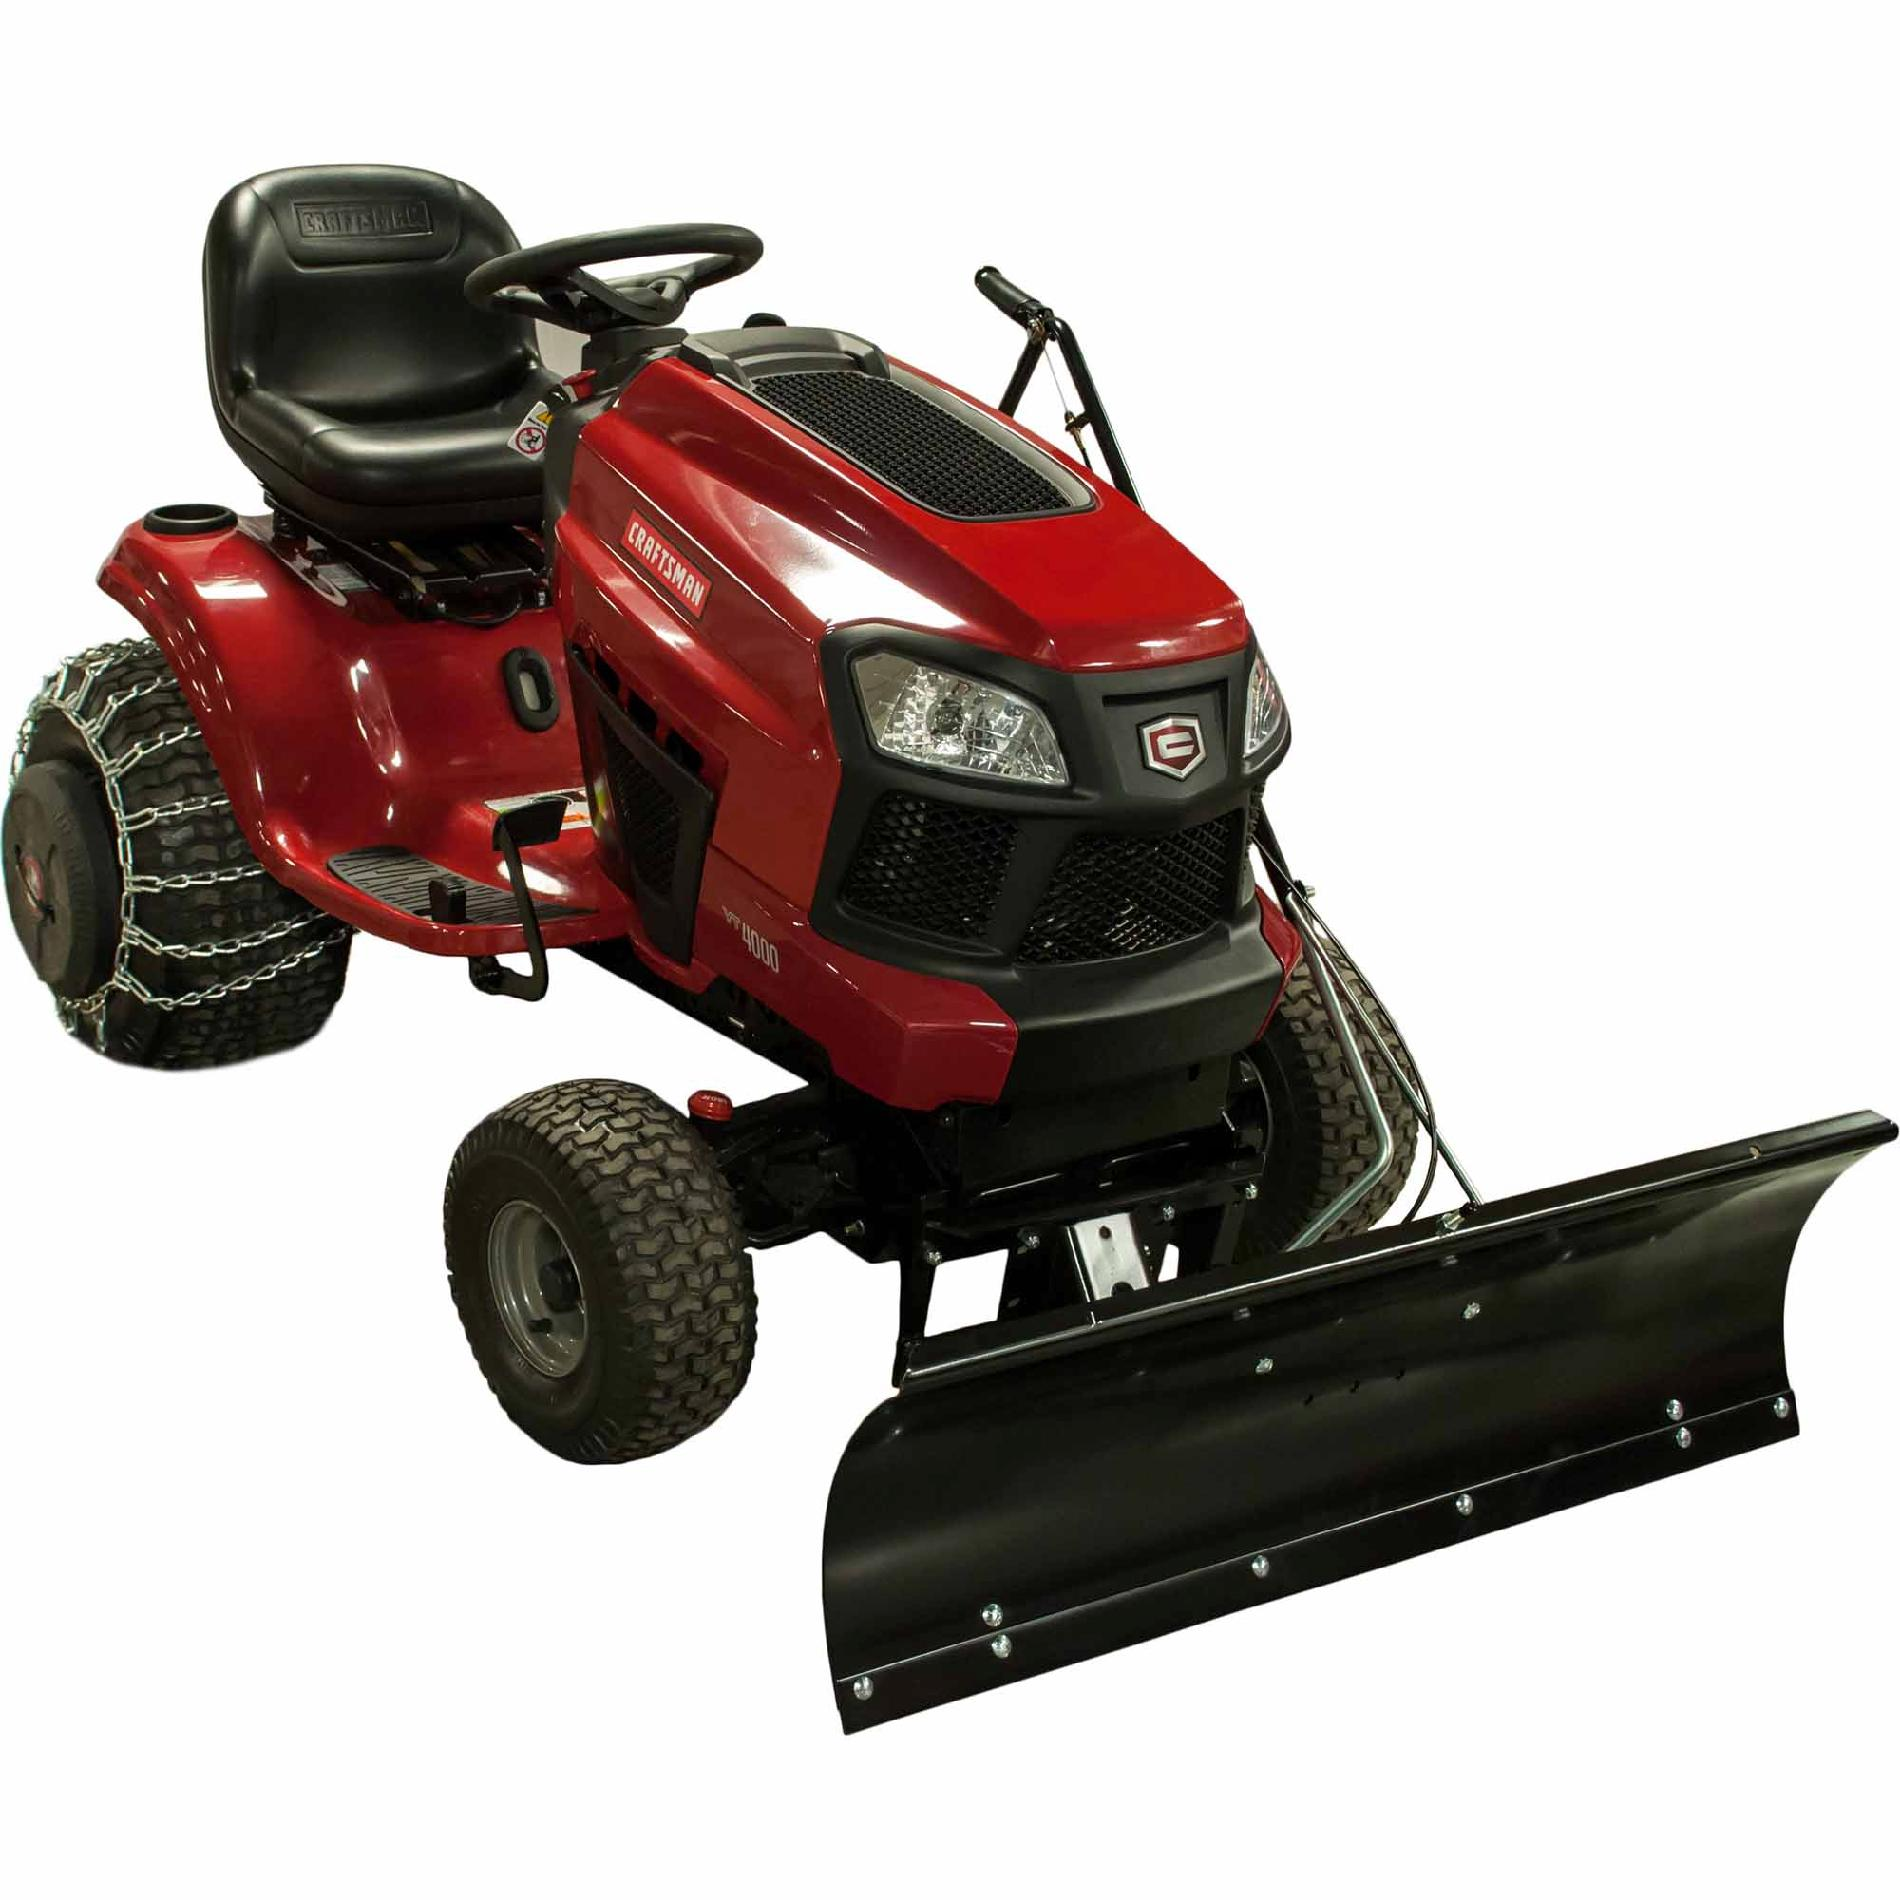 Craftsman Lawn Tractor Snow Blade 14 High Sears